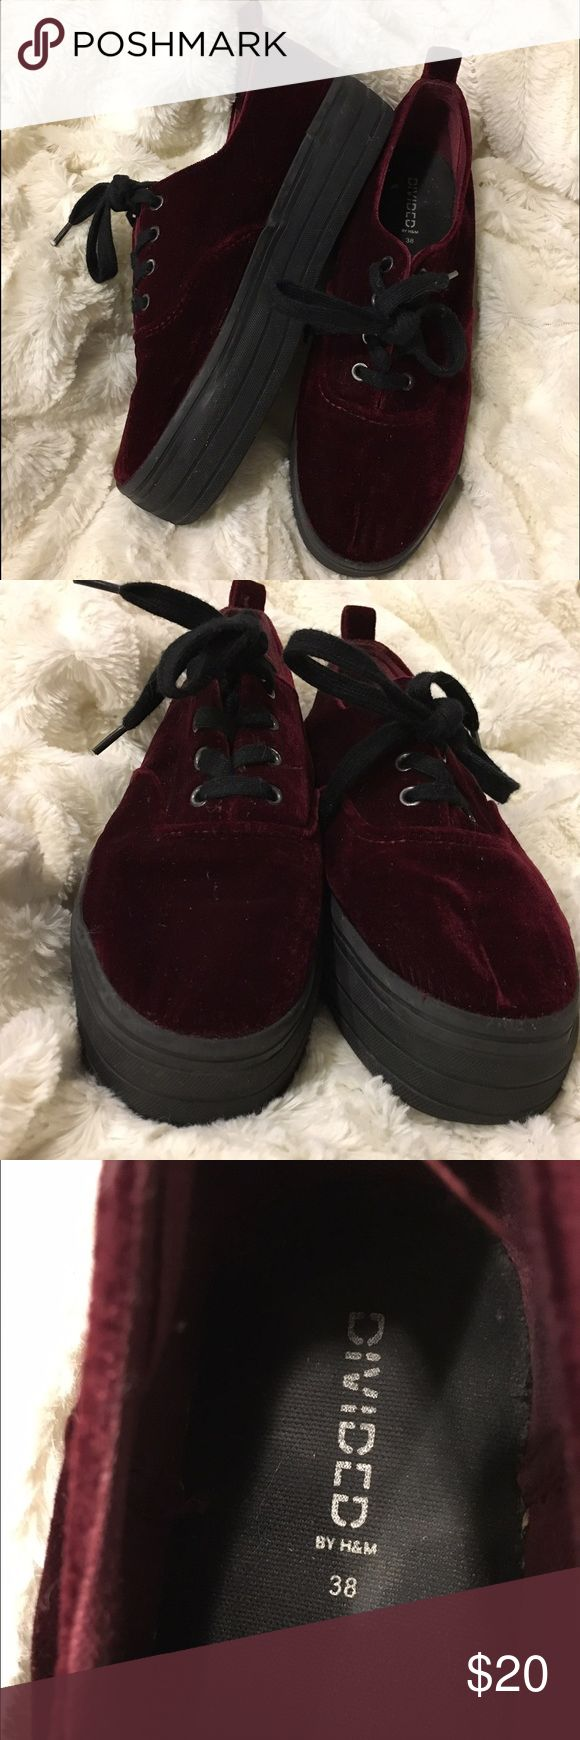 Divided by H&M velvet platform tennis shoes Divided velvet platform sneakers in maroon/oxblood. These are in great condition and are super fun! They're a size 38 and run a little big on me (I'm usually a 7.5). Divided Shoes Platforms